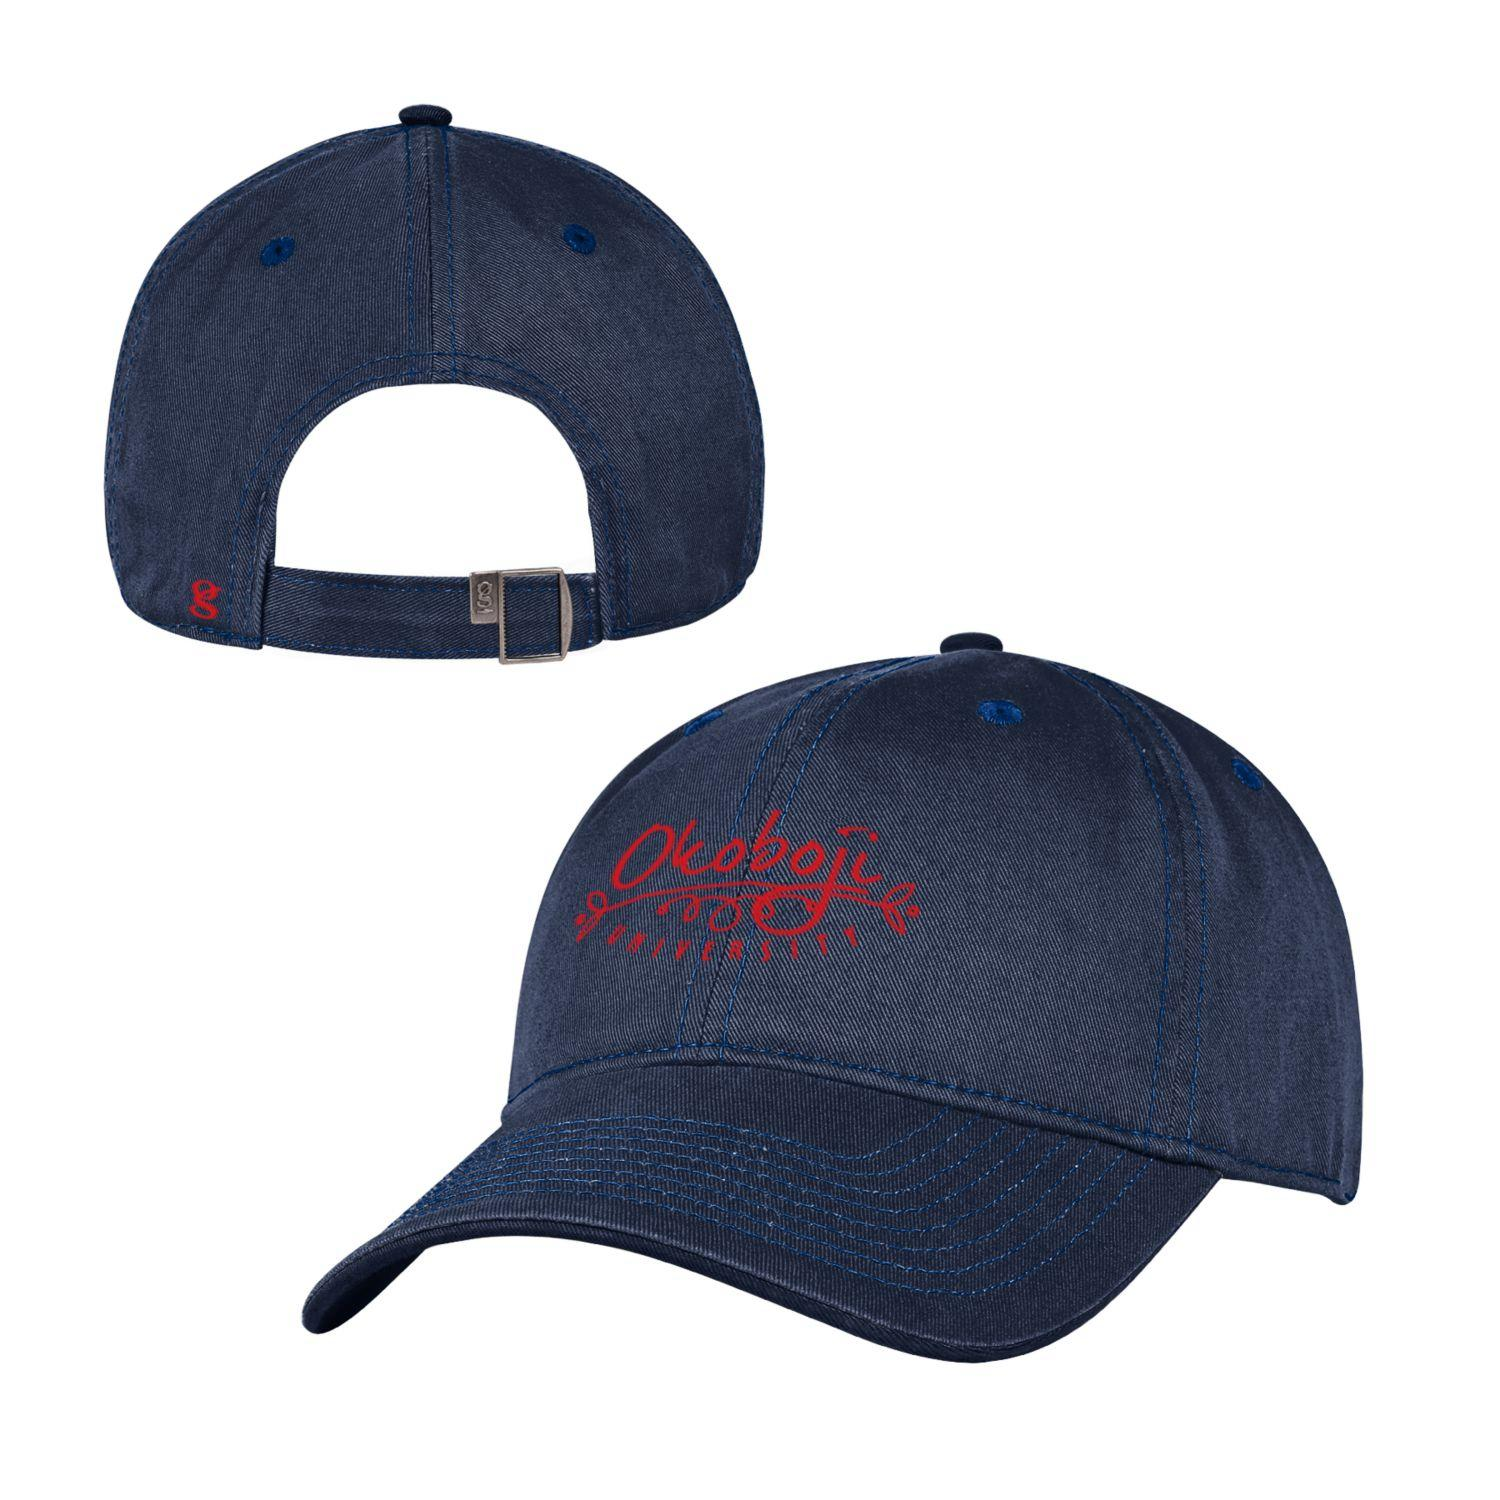 Women's Navy Adjustable Hat